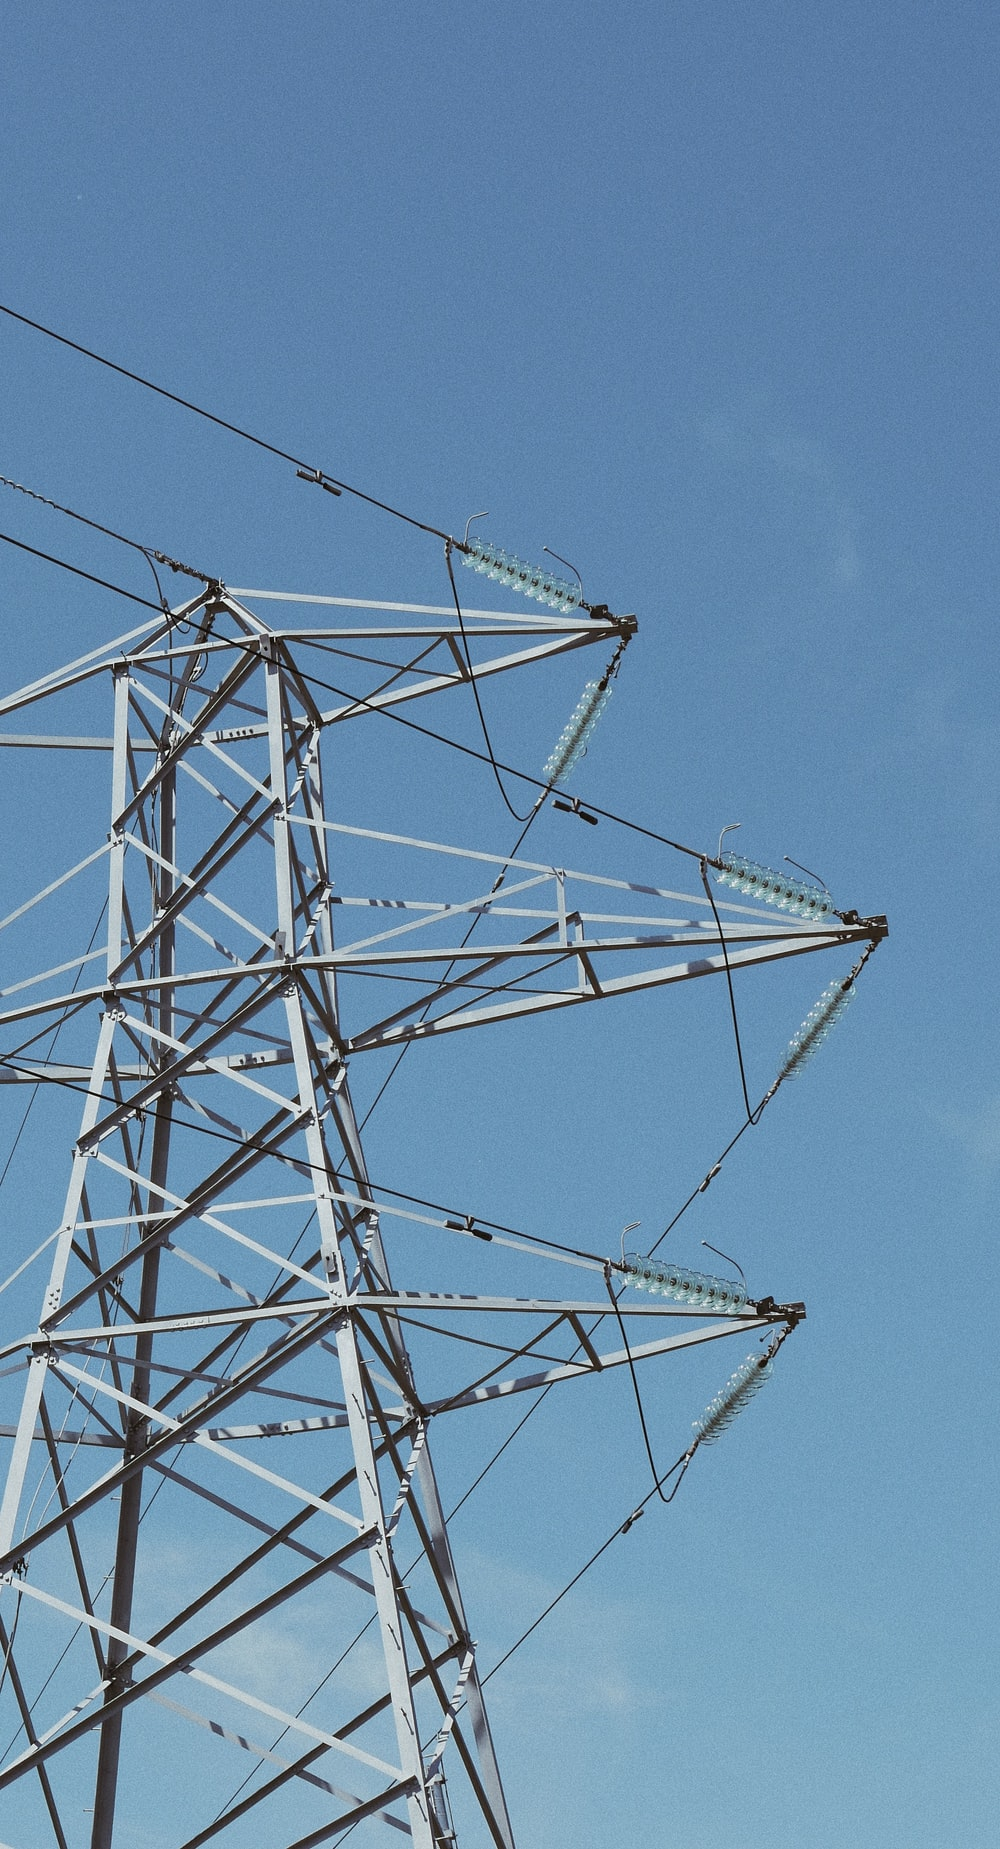 white metal electric towers under blue sky during daytime